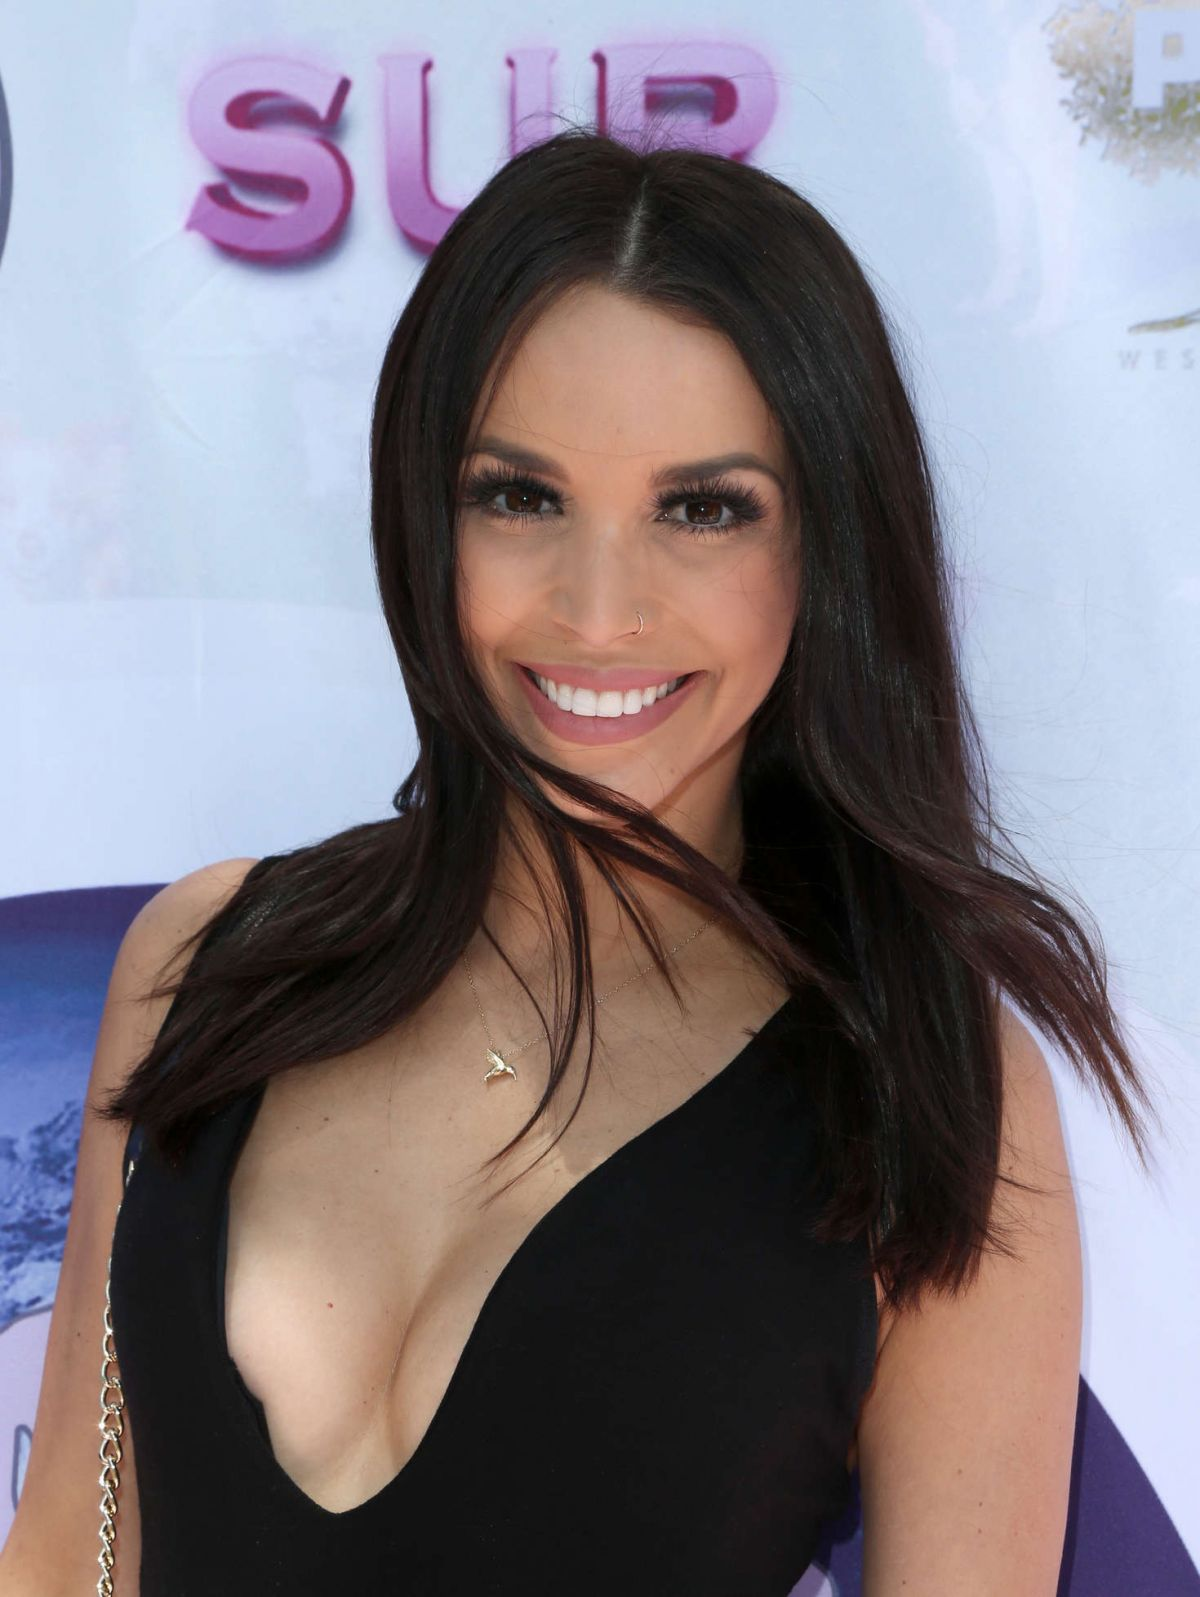 Scheana Shay At World Dog Day In West Hollywood